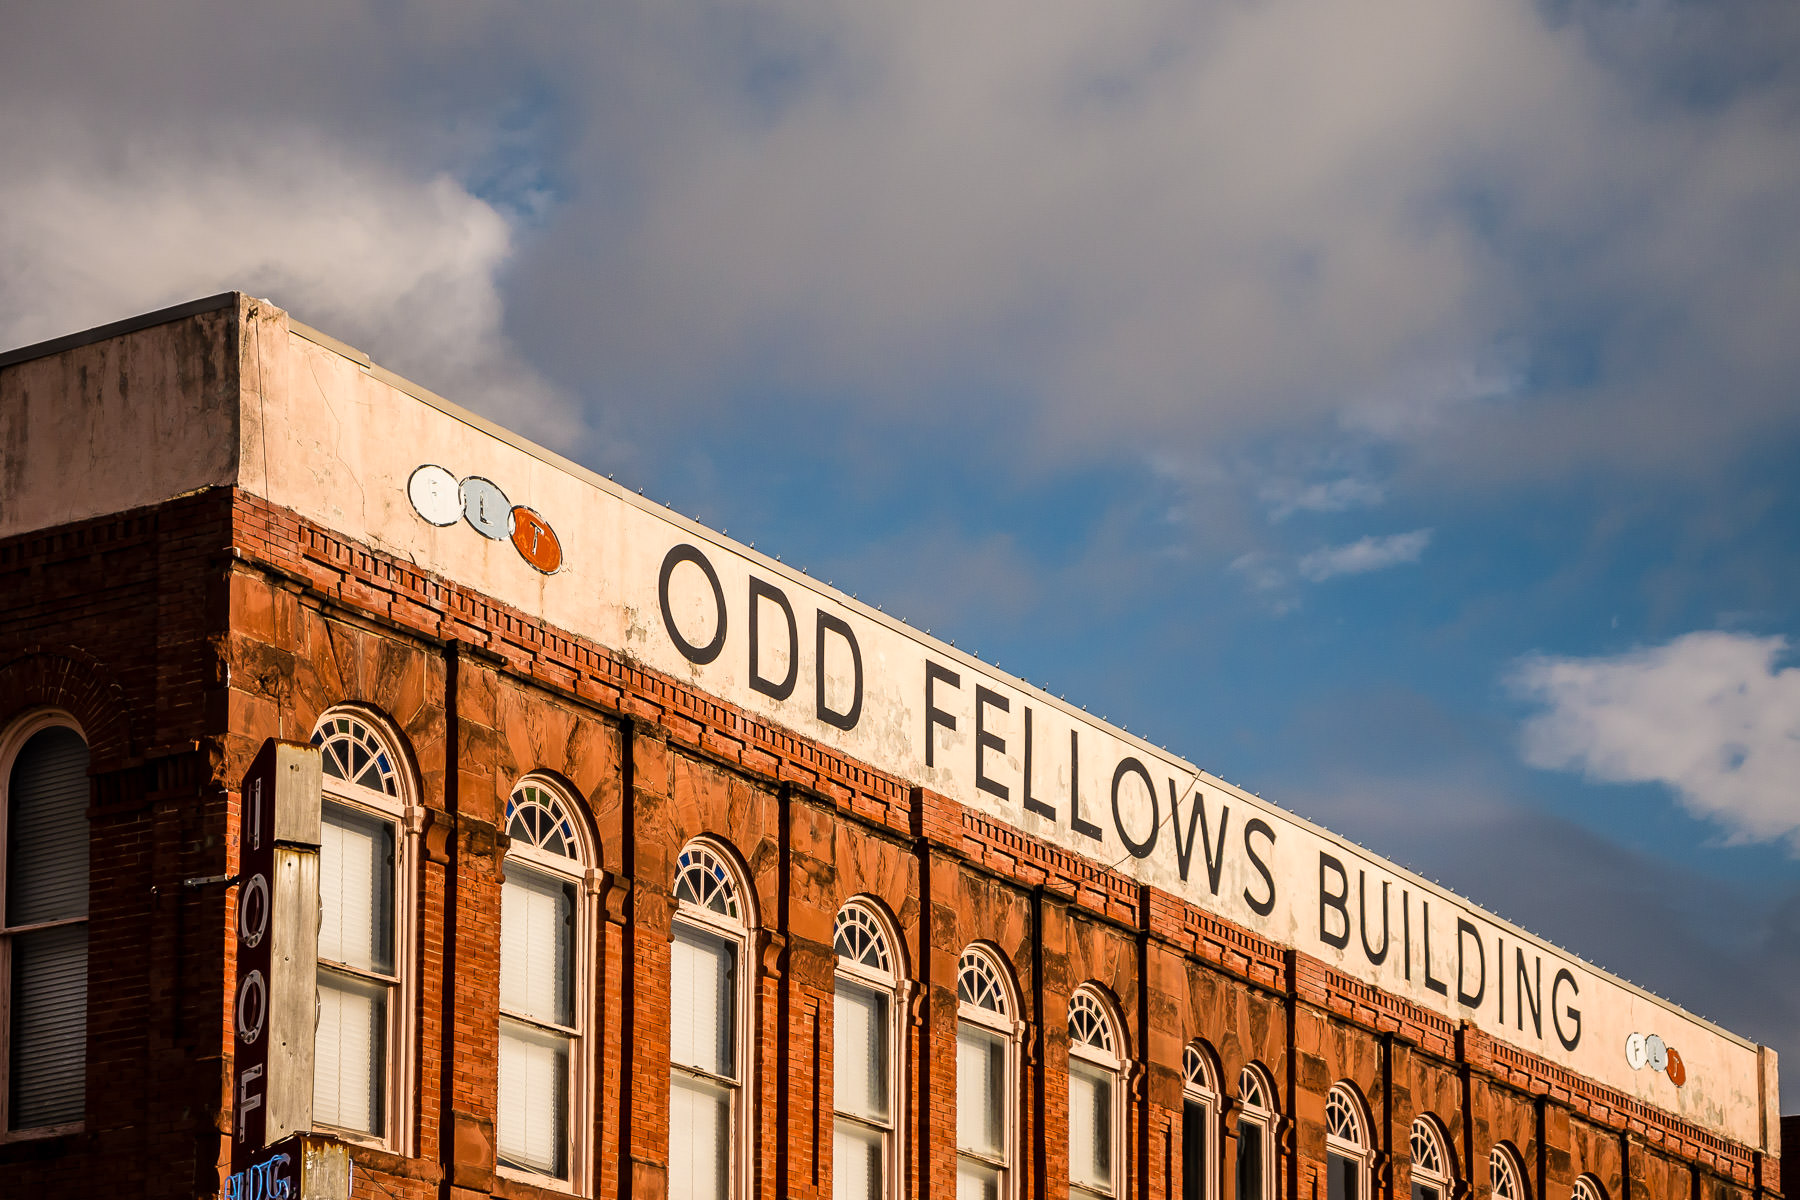 Exterior detail of the Independent Order of Odd Fellows (IOOF) lodge in Downtown Waxahachie, Texas.